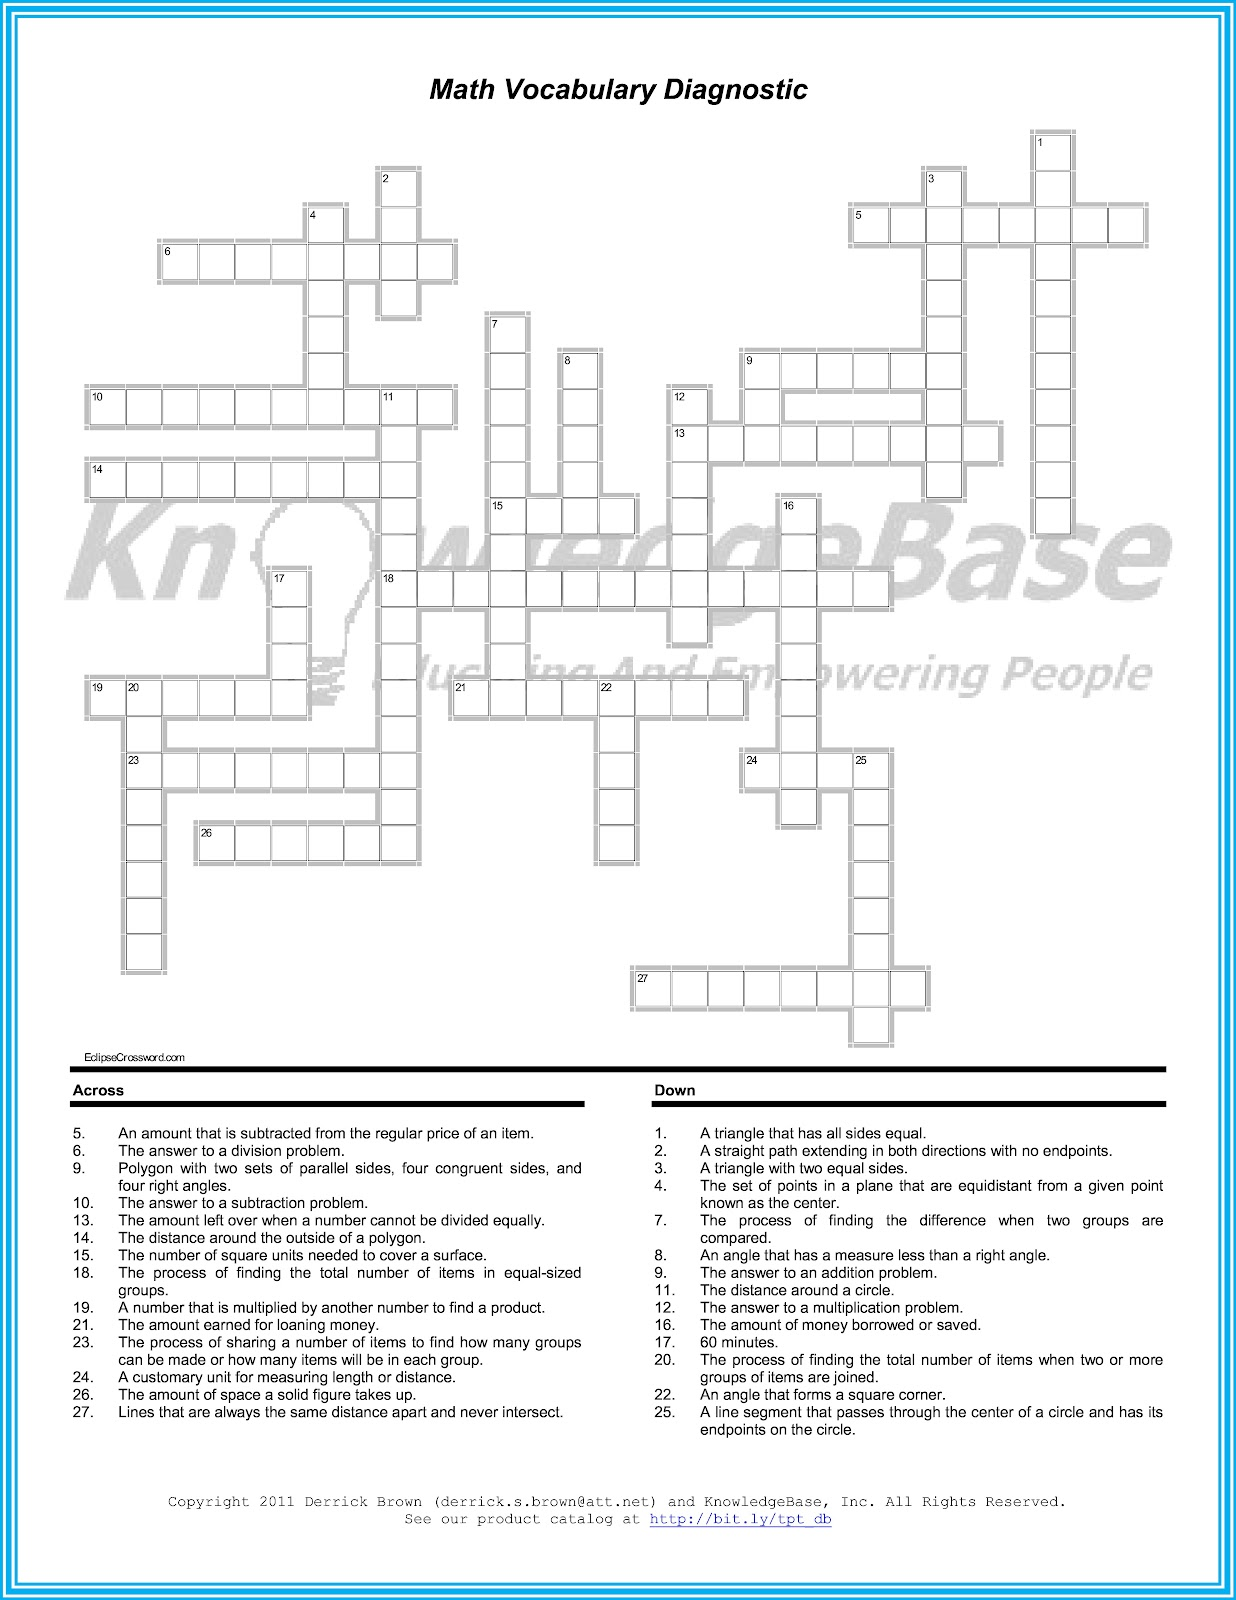 Big Ideas About Math Education Crossword Puzzle Vocabulary Diagnostic